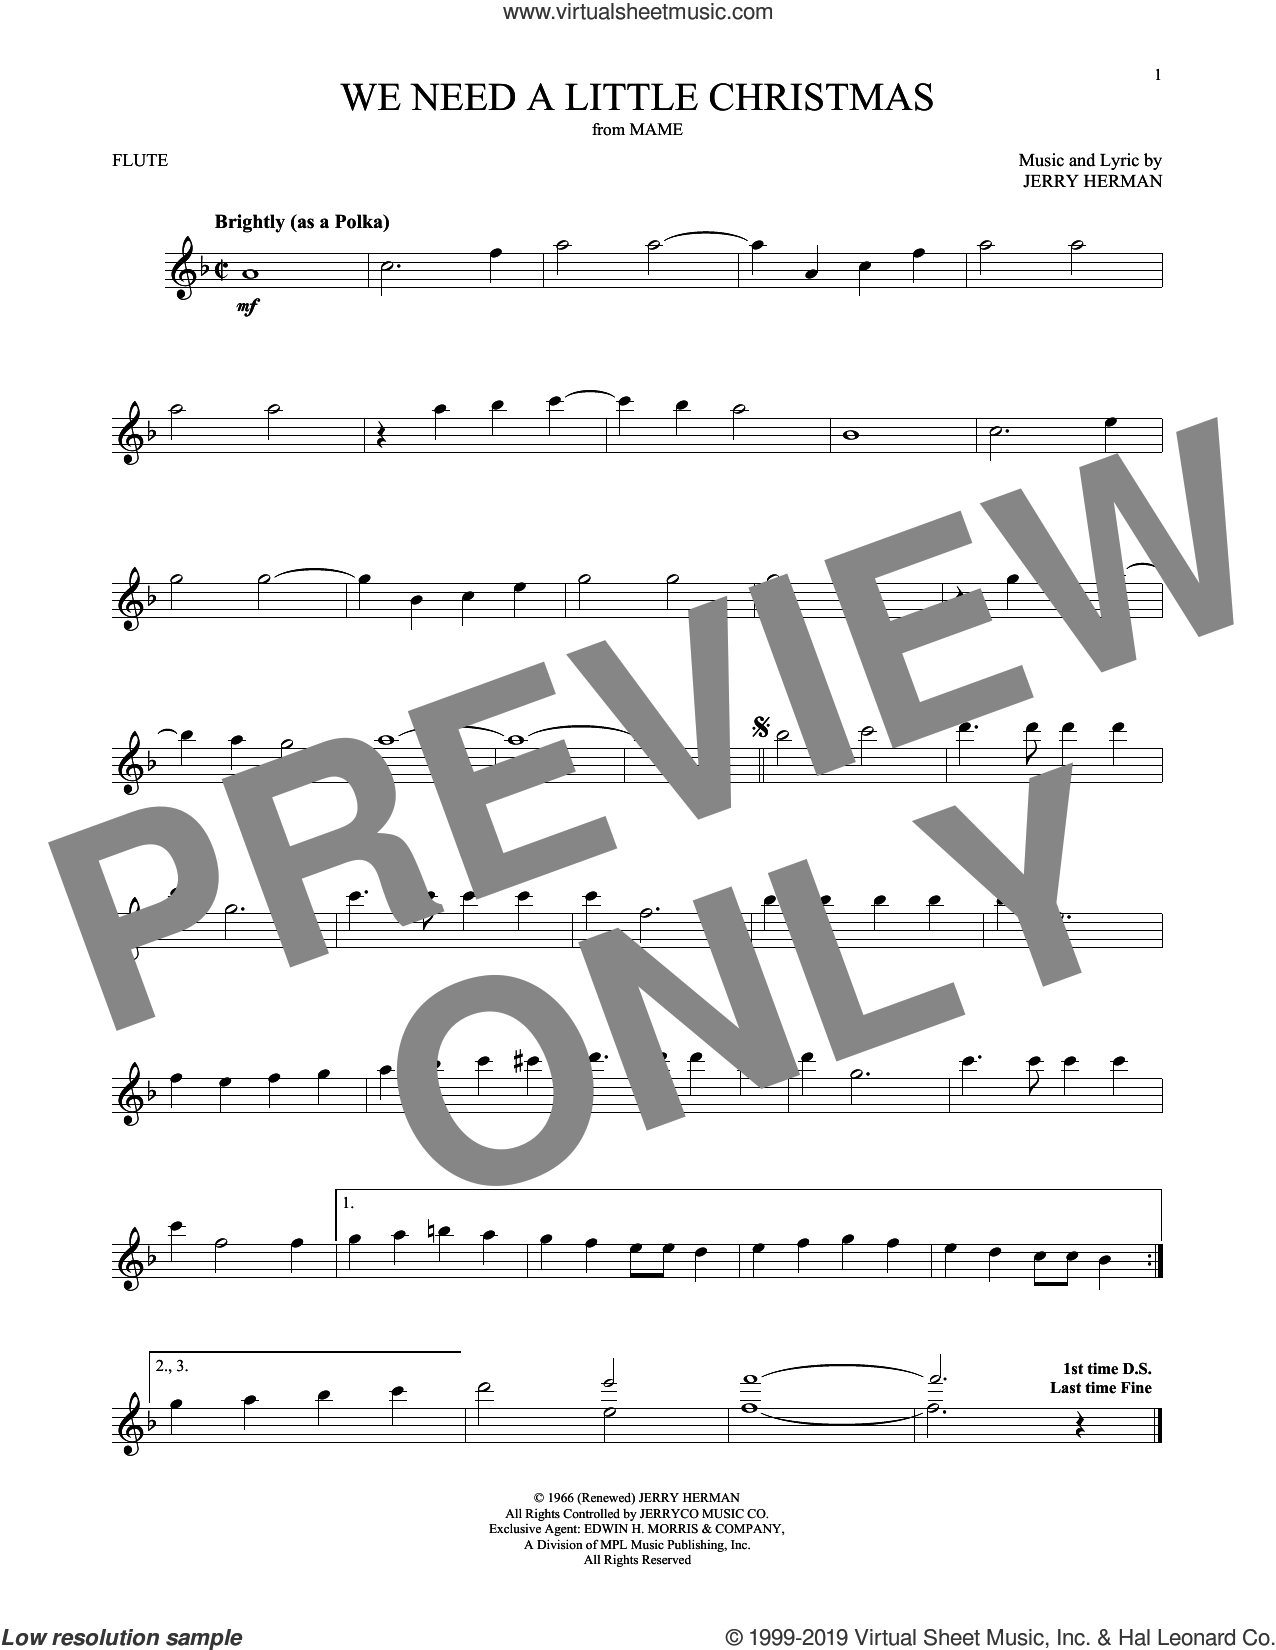 We Need A Little Christmas sheet music for flute solo by Jerry Herman and Kimberley Locke, intermediate skill level